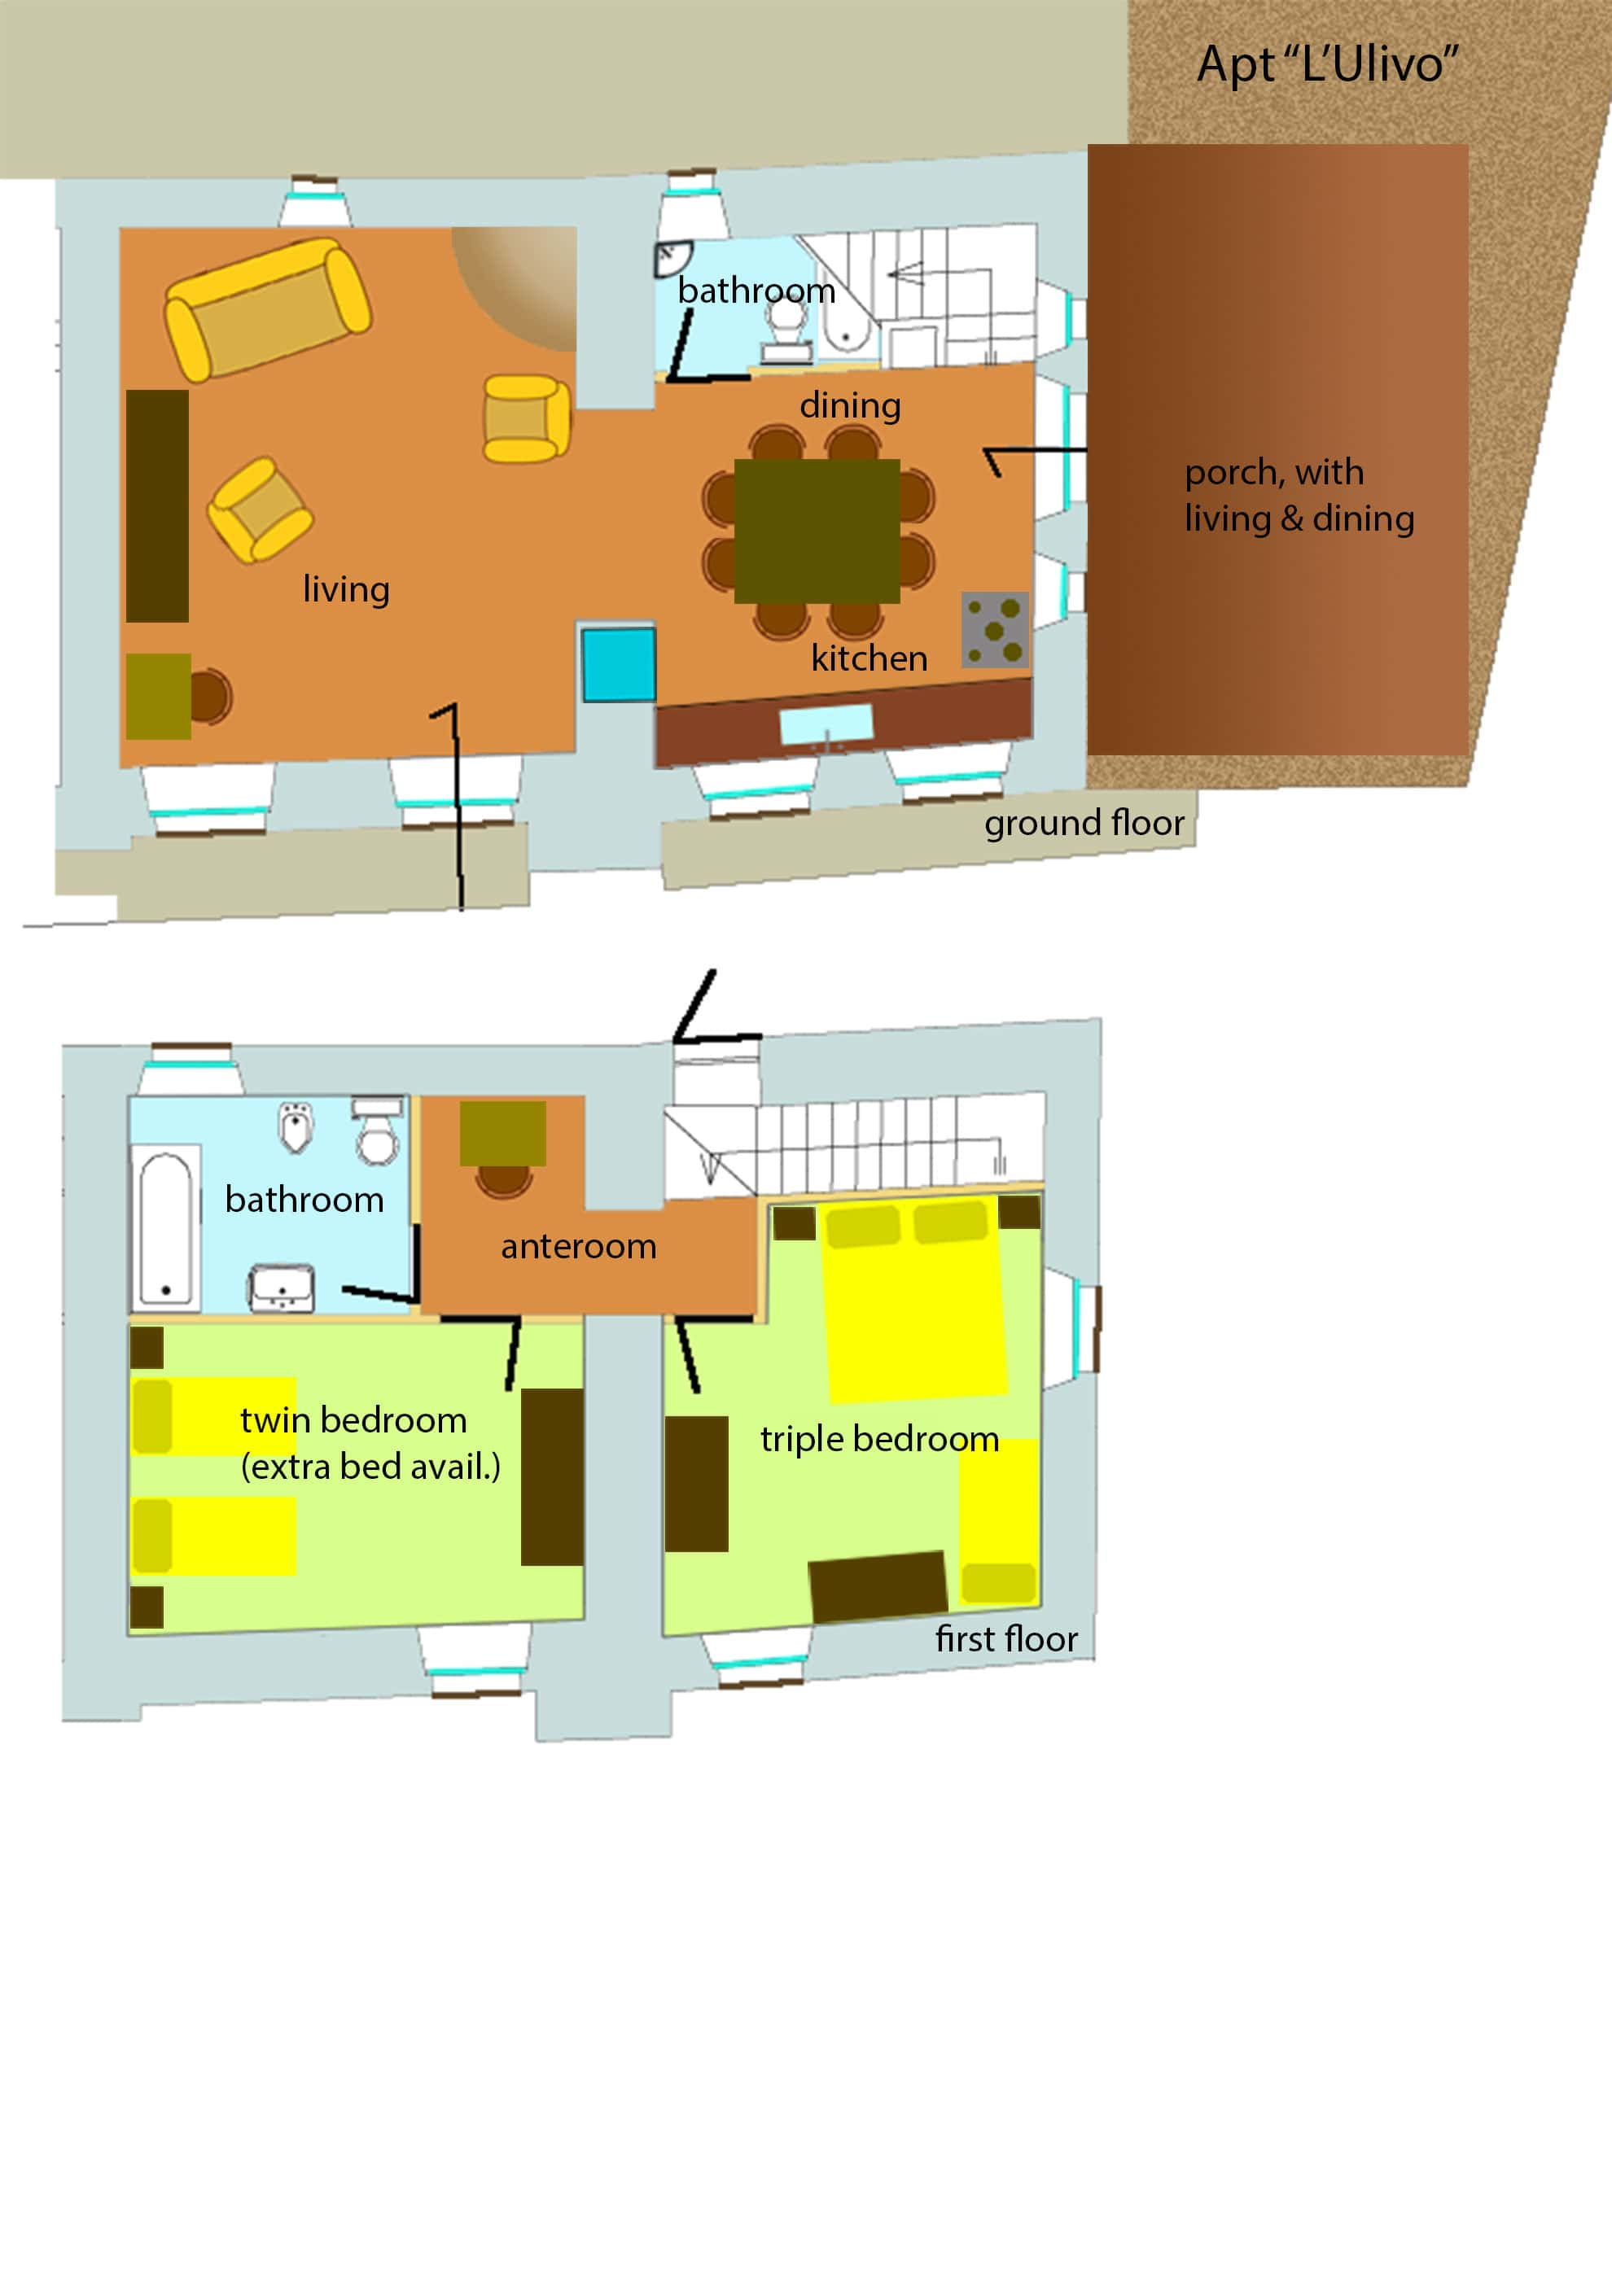 layout of the apt3